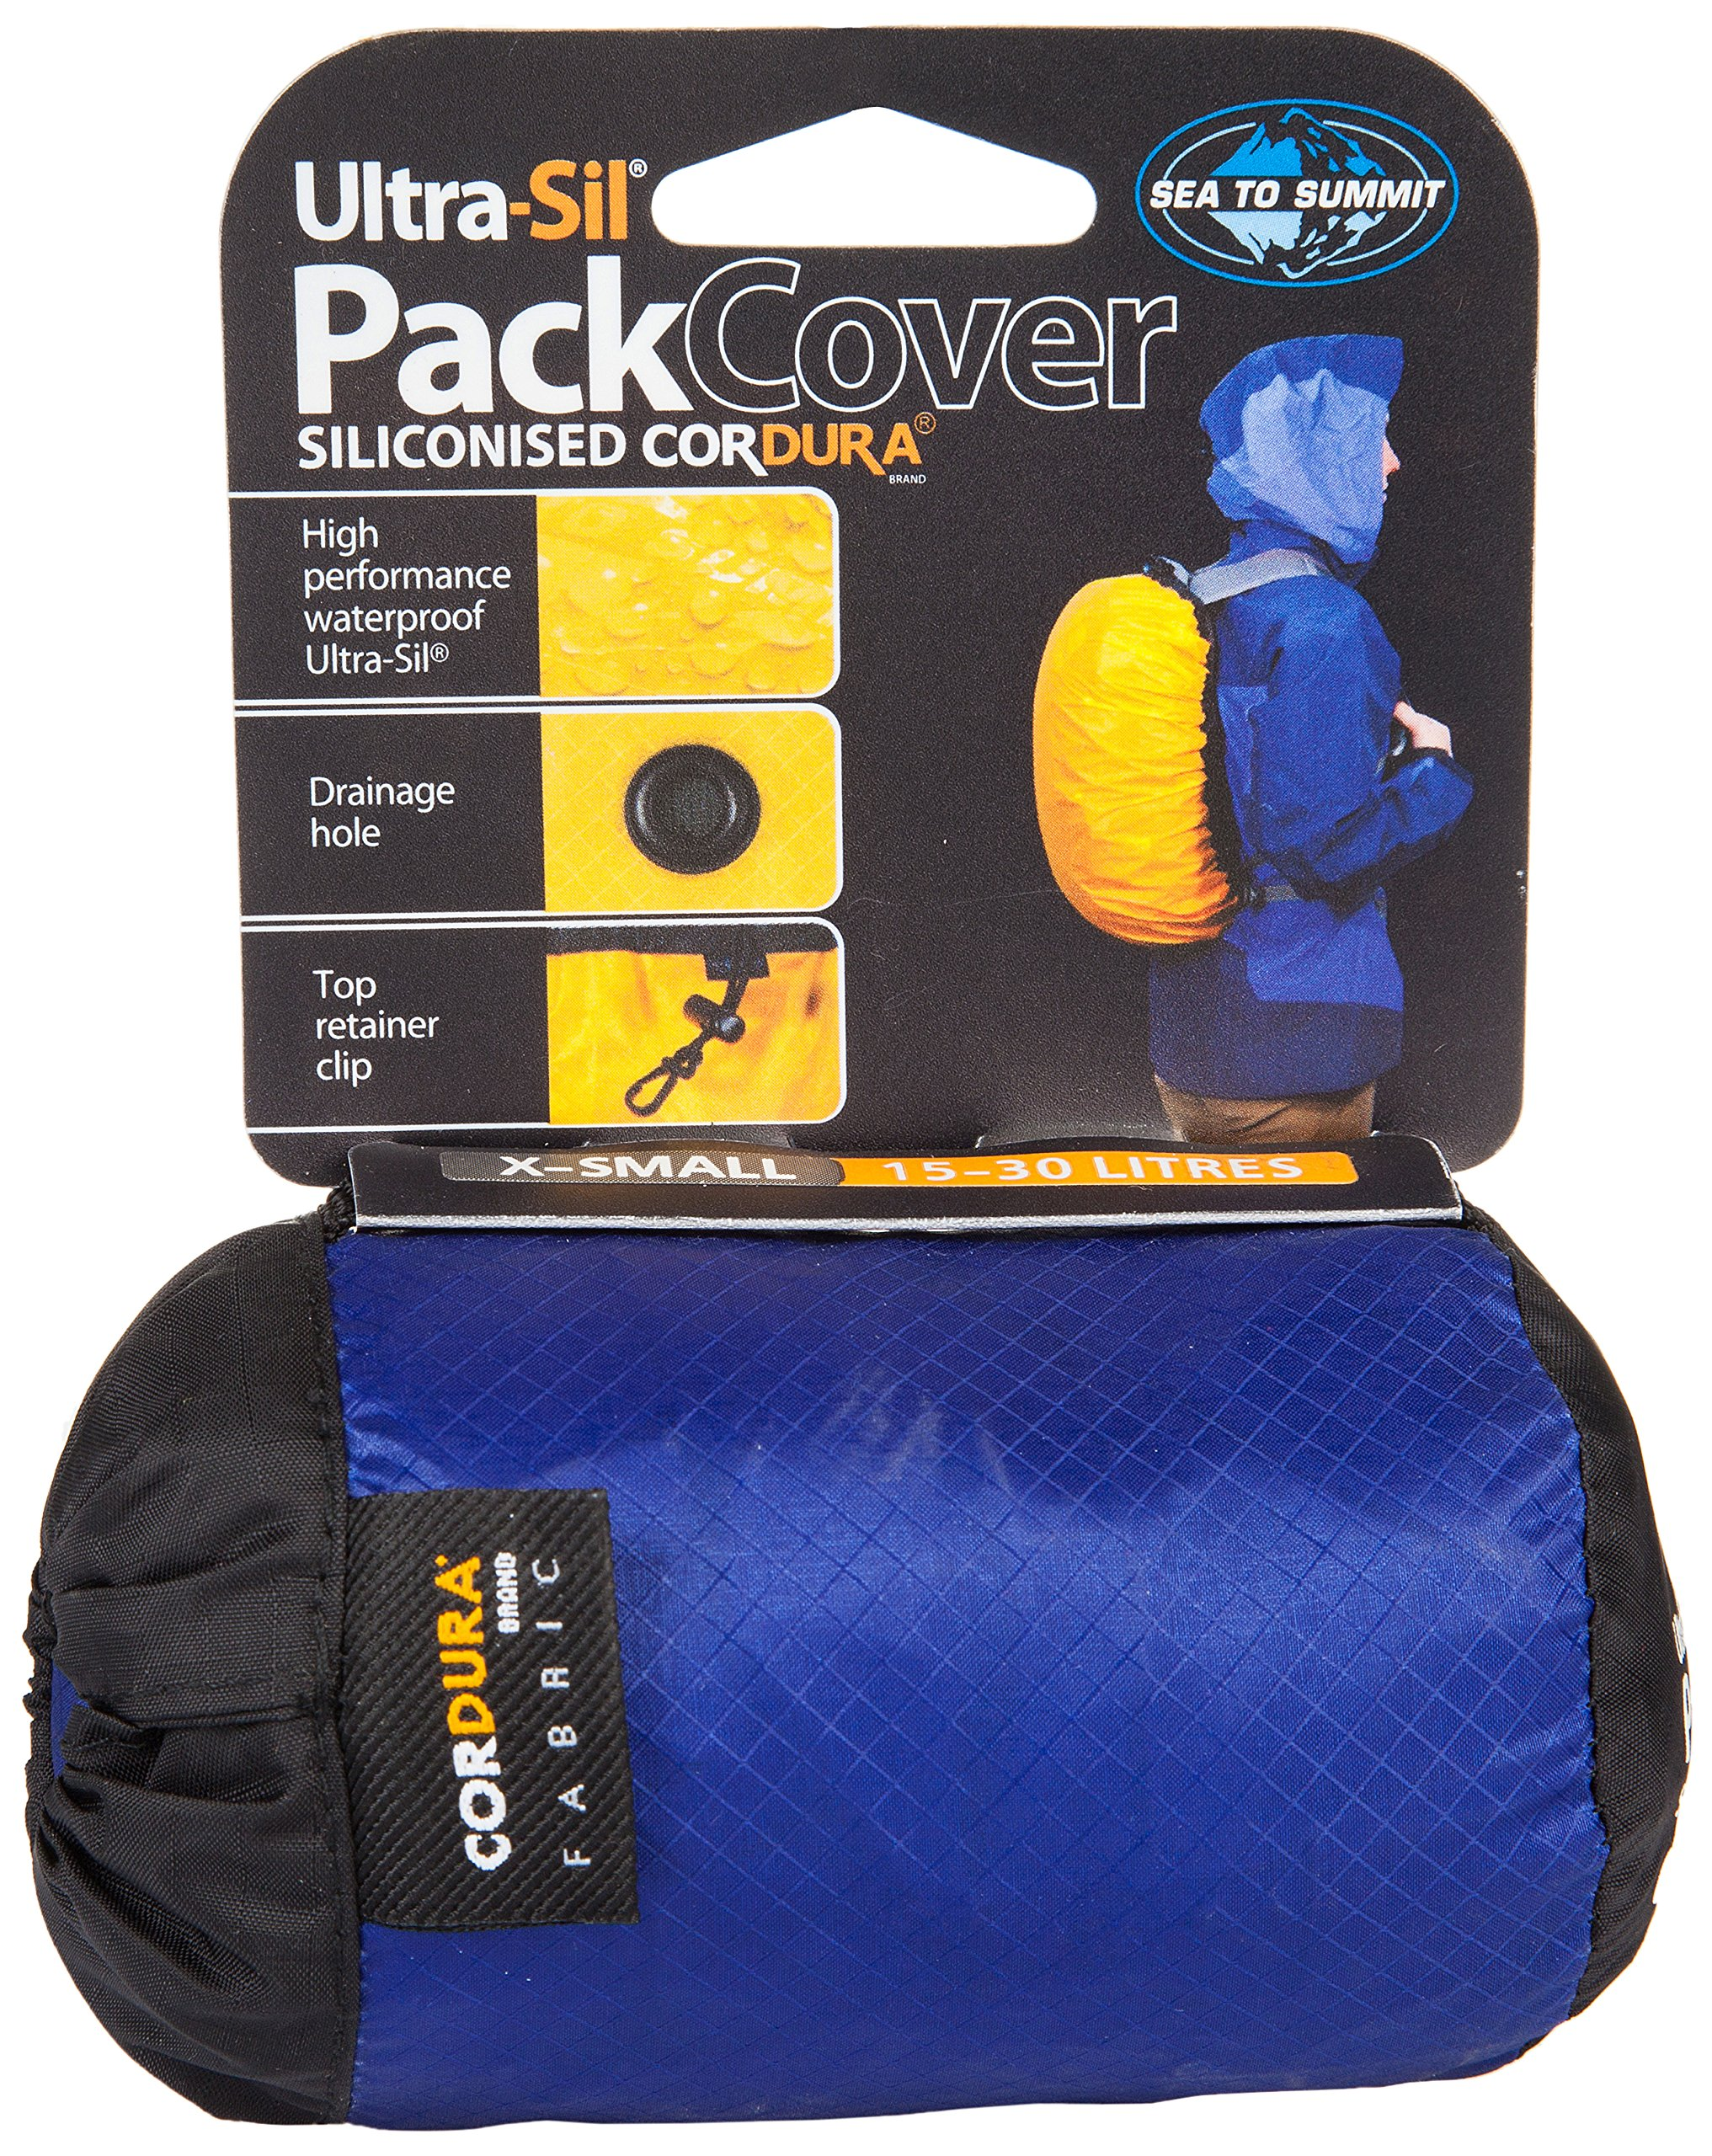 Sea to Summit SN240 Ultra-Light Siliconized Cordura Pack Cover,Blue,Large by Sea to Summit